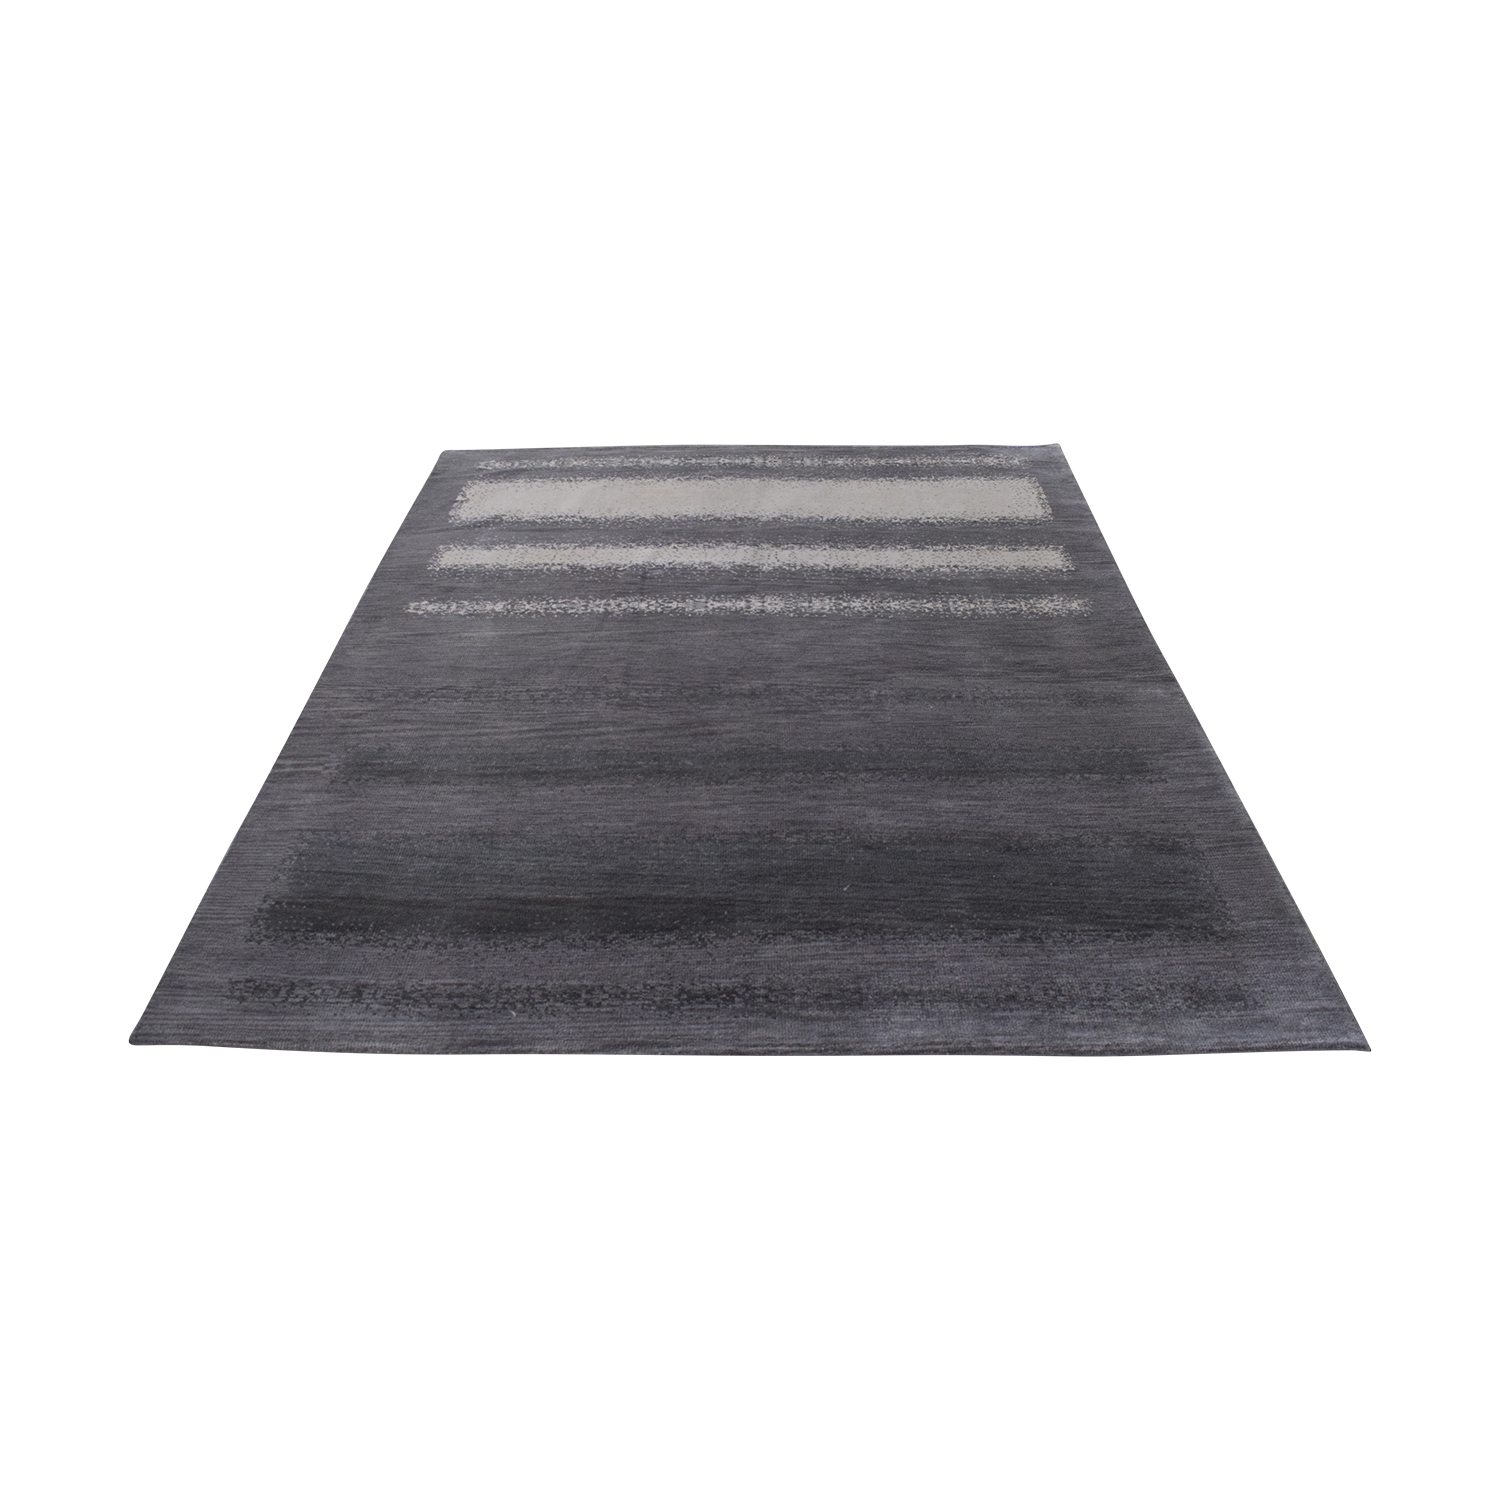 Room & Board Room & Board Grey Ombre Rug dimensions